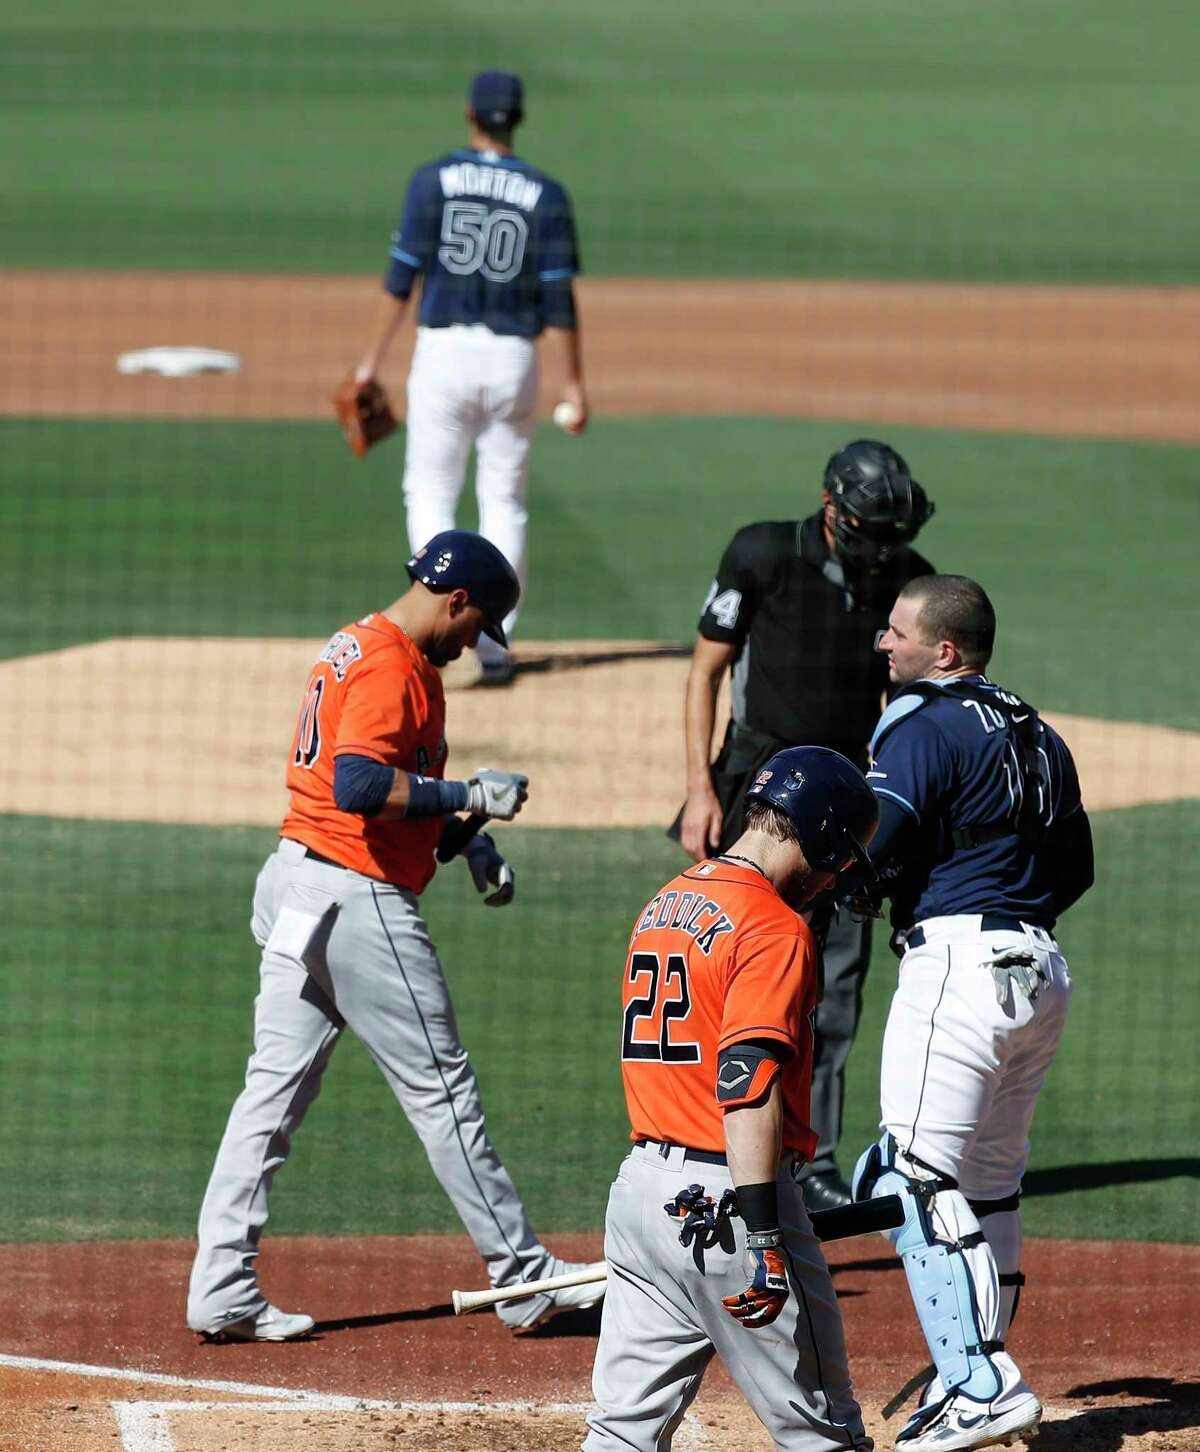 Houston Astros Yuli Gurriel (10) reacts after being hit by a pitch from Tampa Bay Rays starting pitcher Charlie Morton (50) during the third inning of Game 2 of the American League Championship Series at Petco Park, Monday, October 12, 2020, in San Diego.